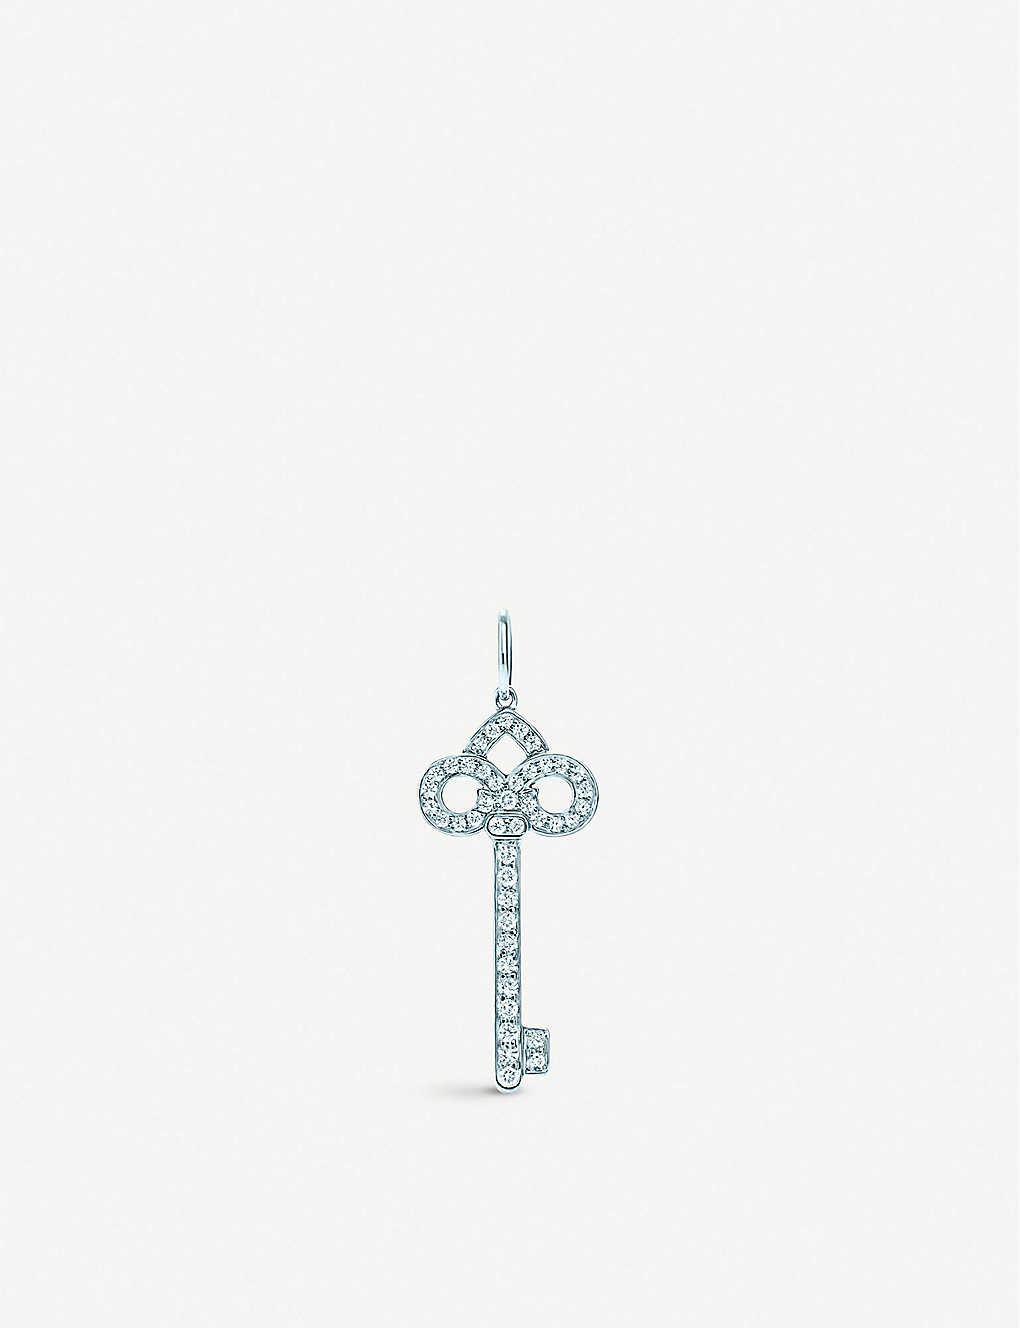 6aa6817d0 TIFFANY & CO Tiffany Keys fleur de lis key pendant in platinum with diamonds